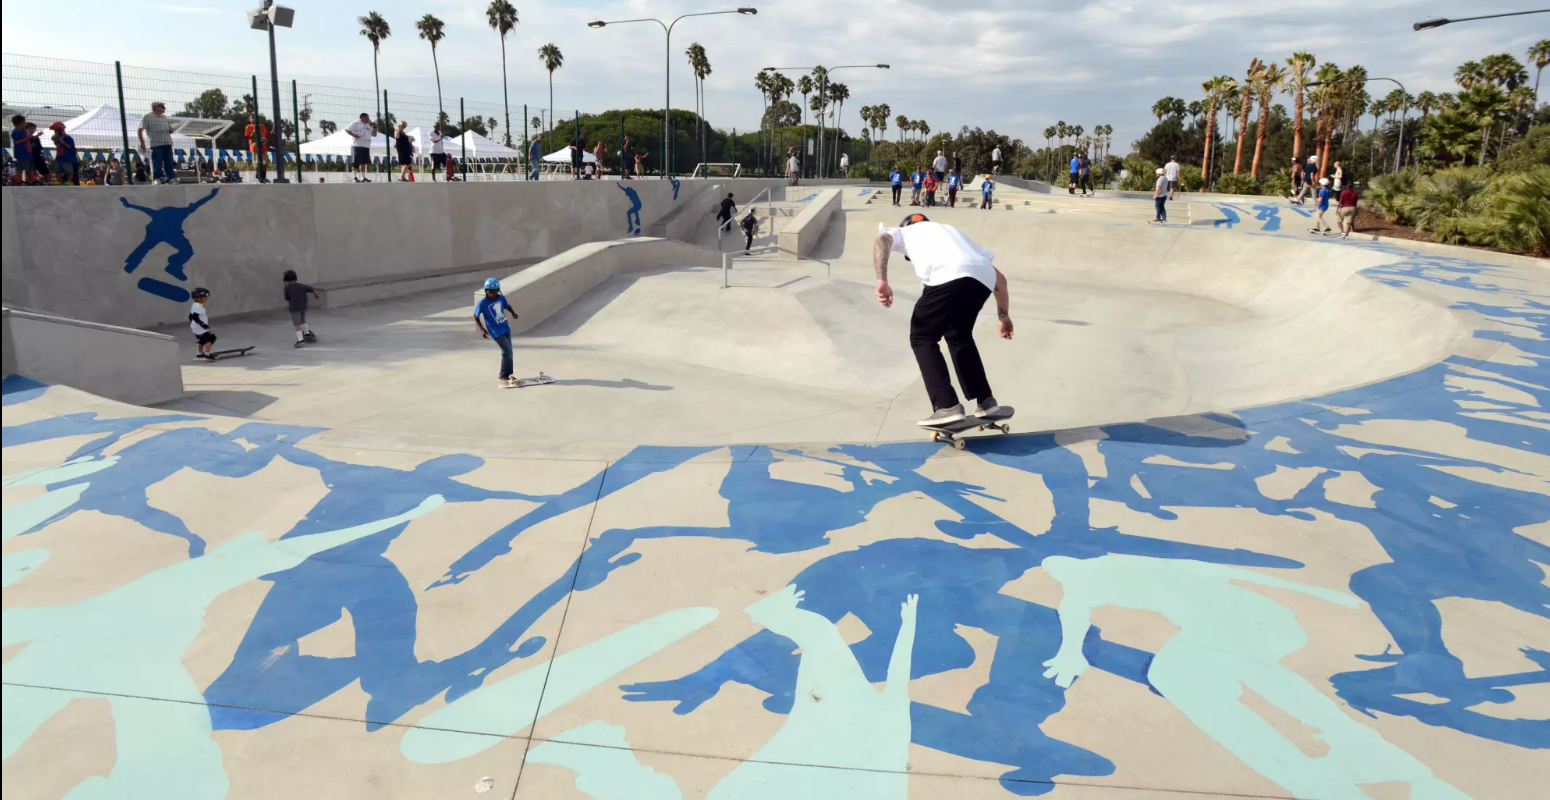 Fluid Dynamics by Kipp Kobayashi at Alondra Park in Los Angeles, seen on Wescover